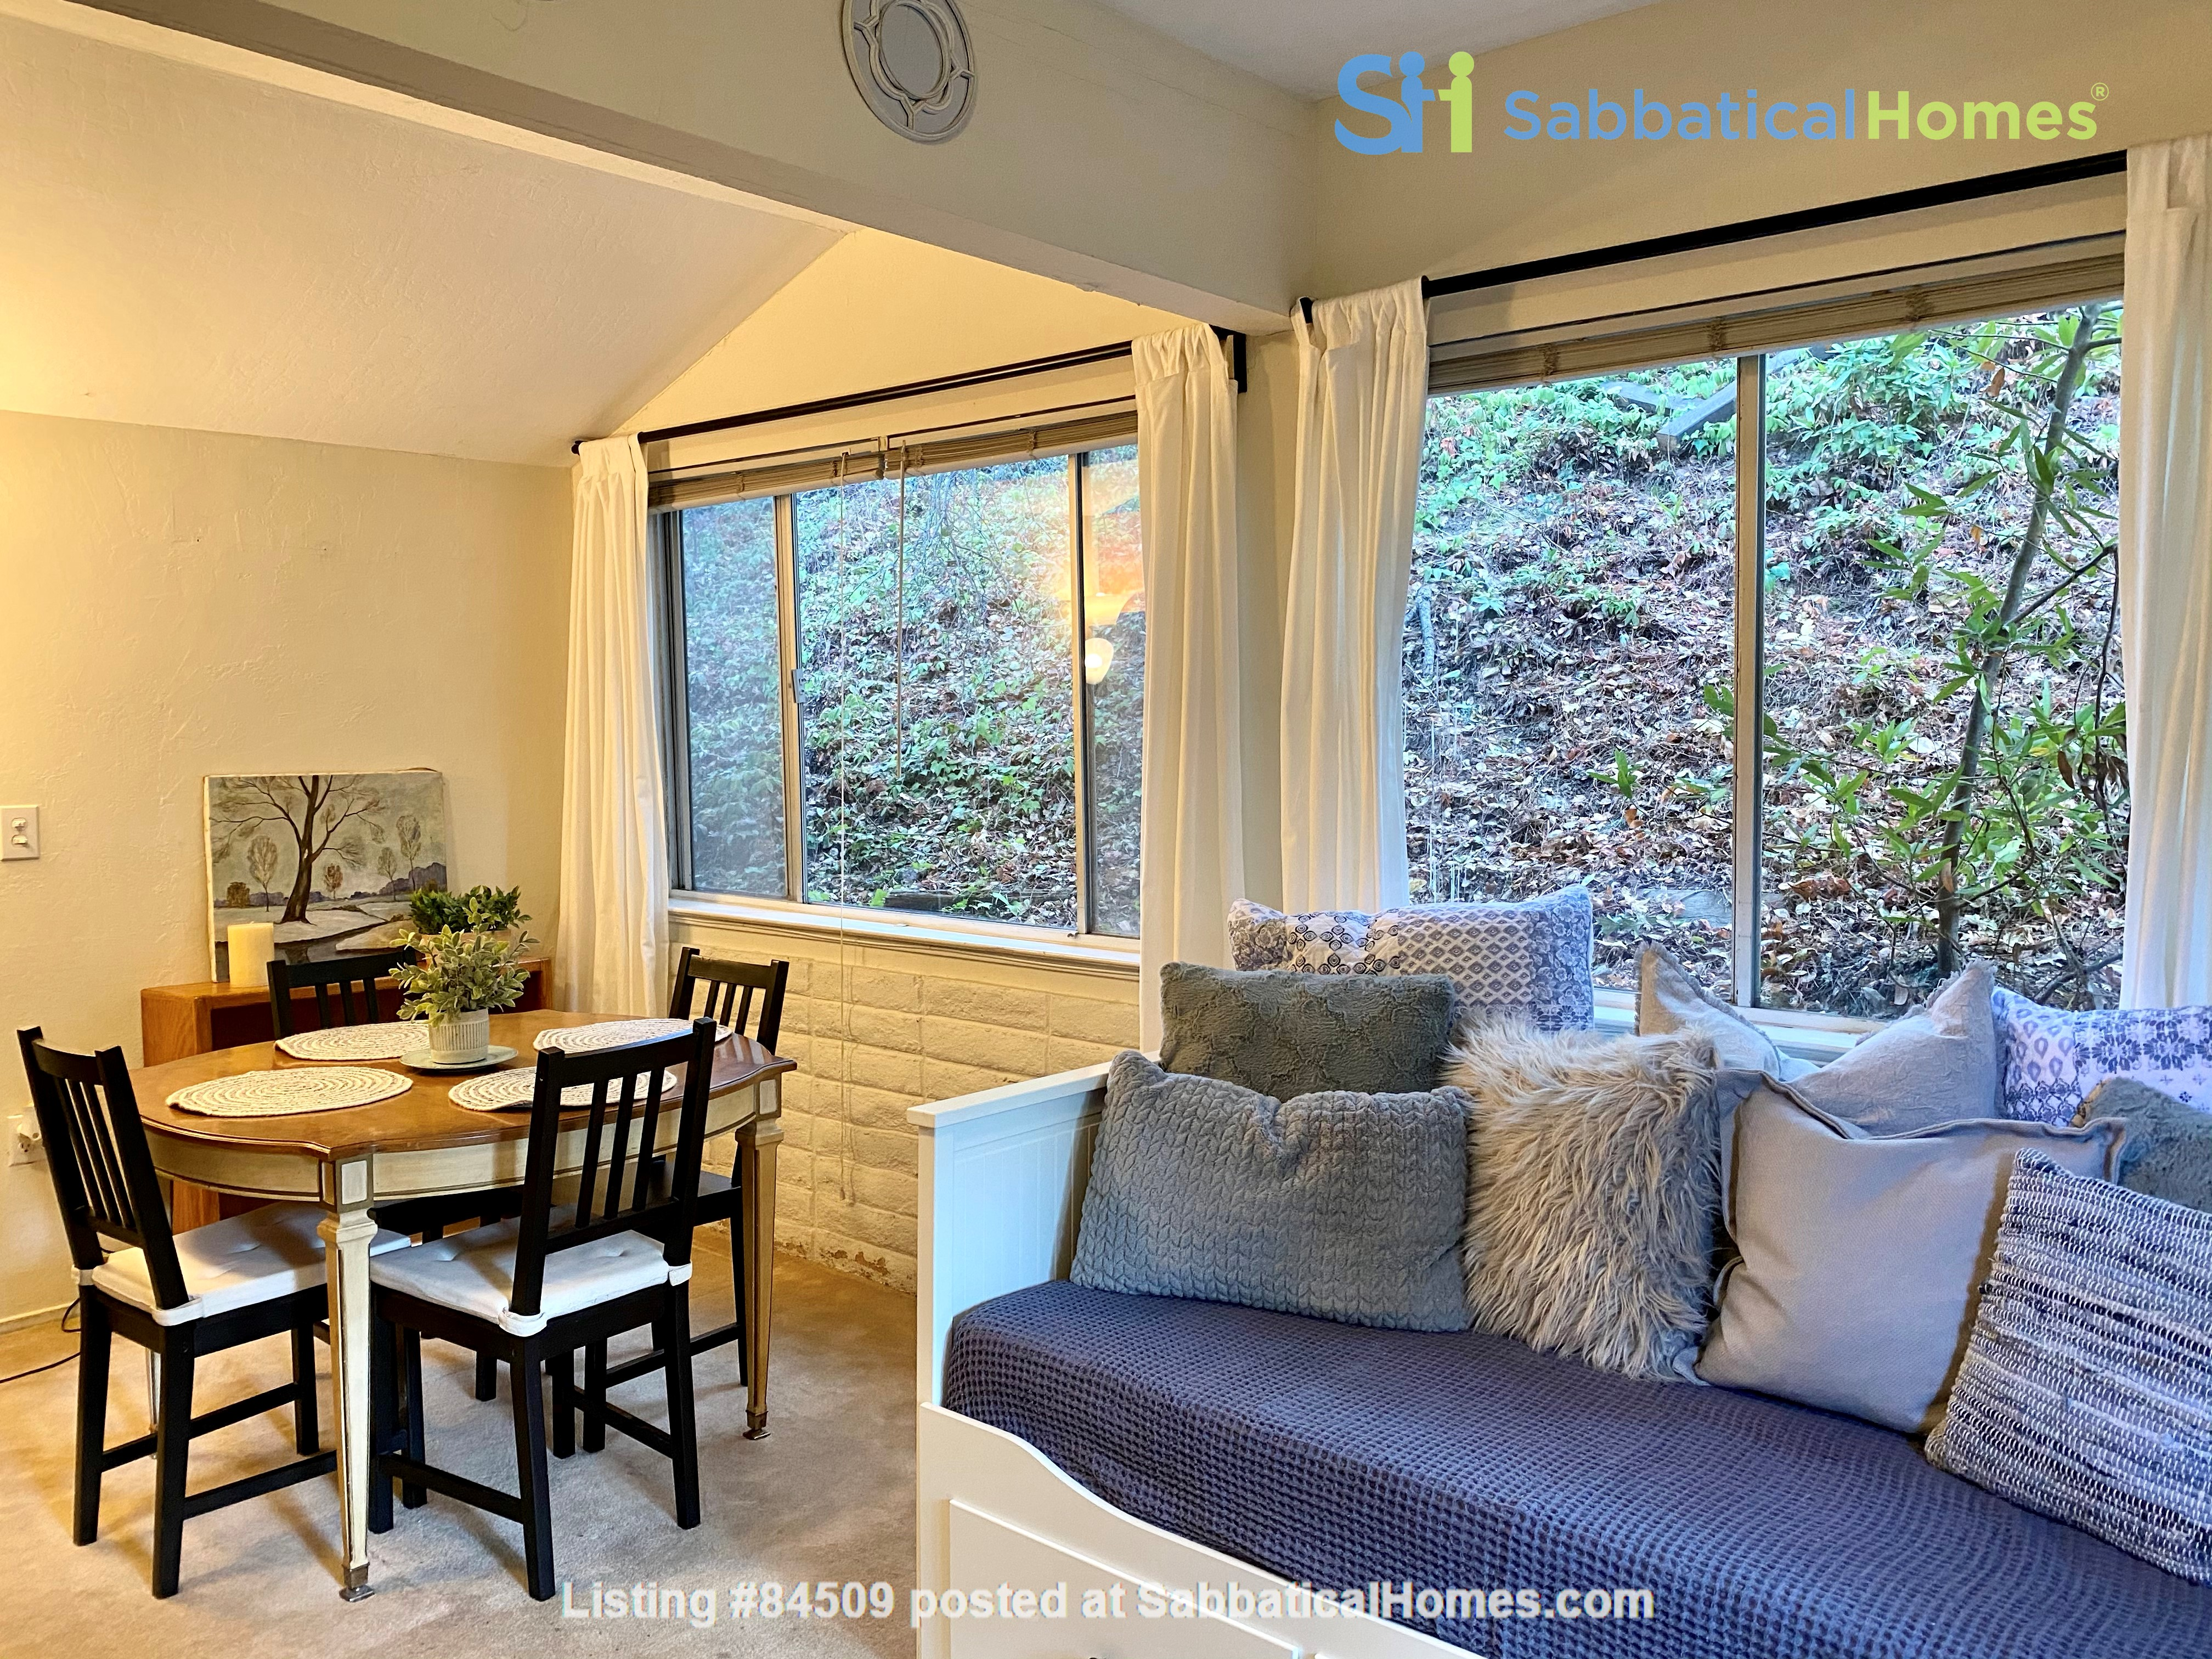 Charming, fully furnished 1BR apartment in Orinda Home Rental in Orinda, California, United States 5